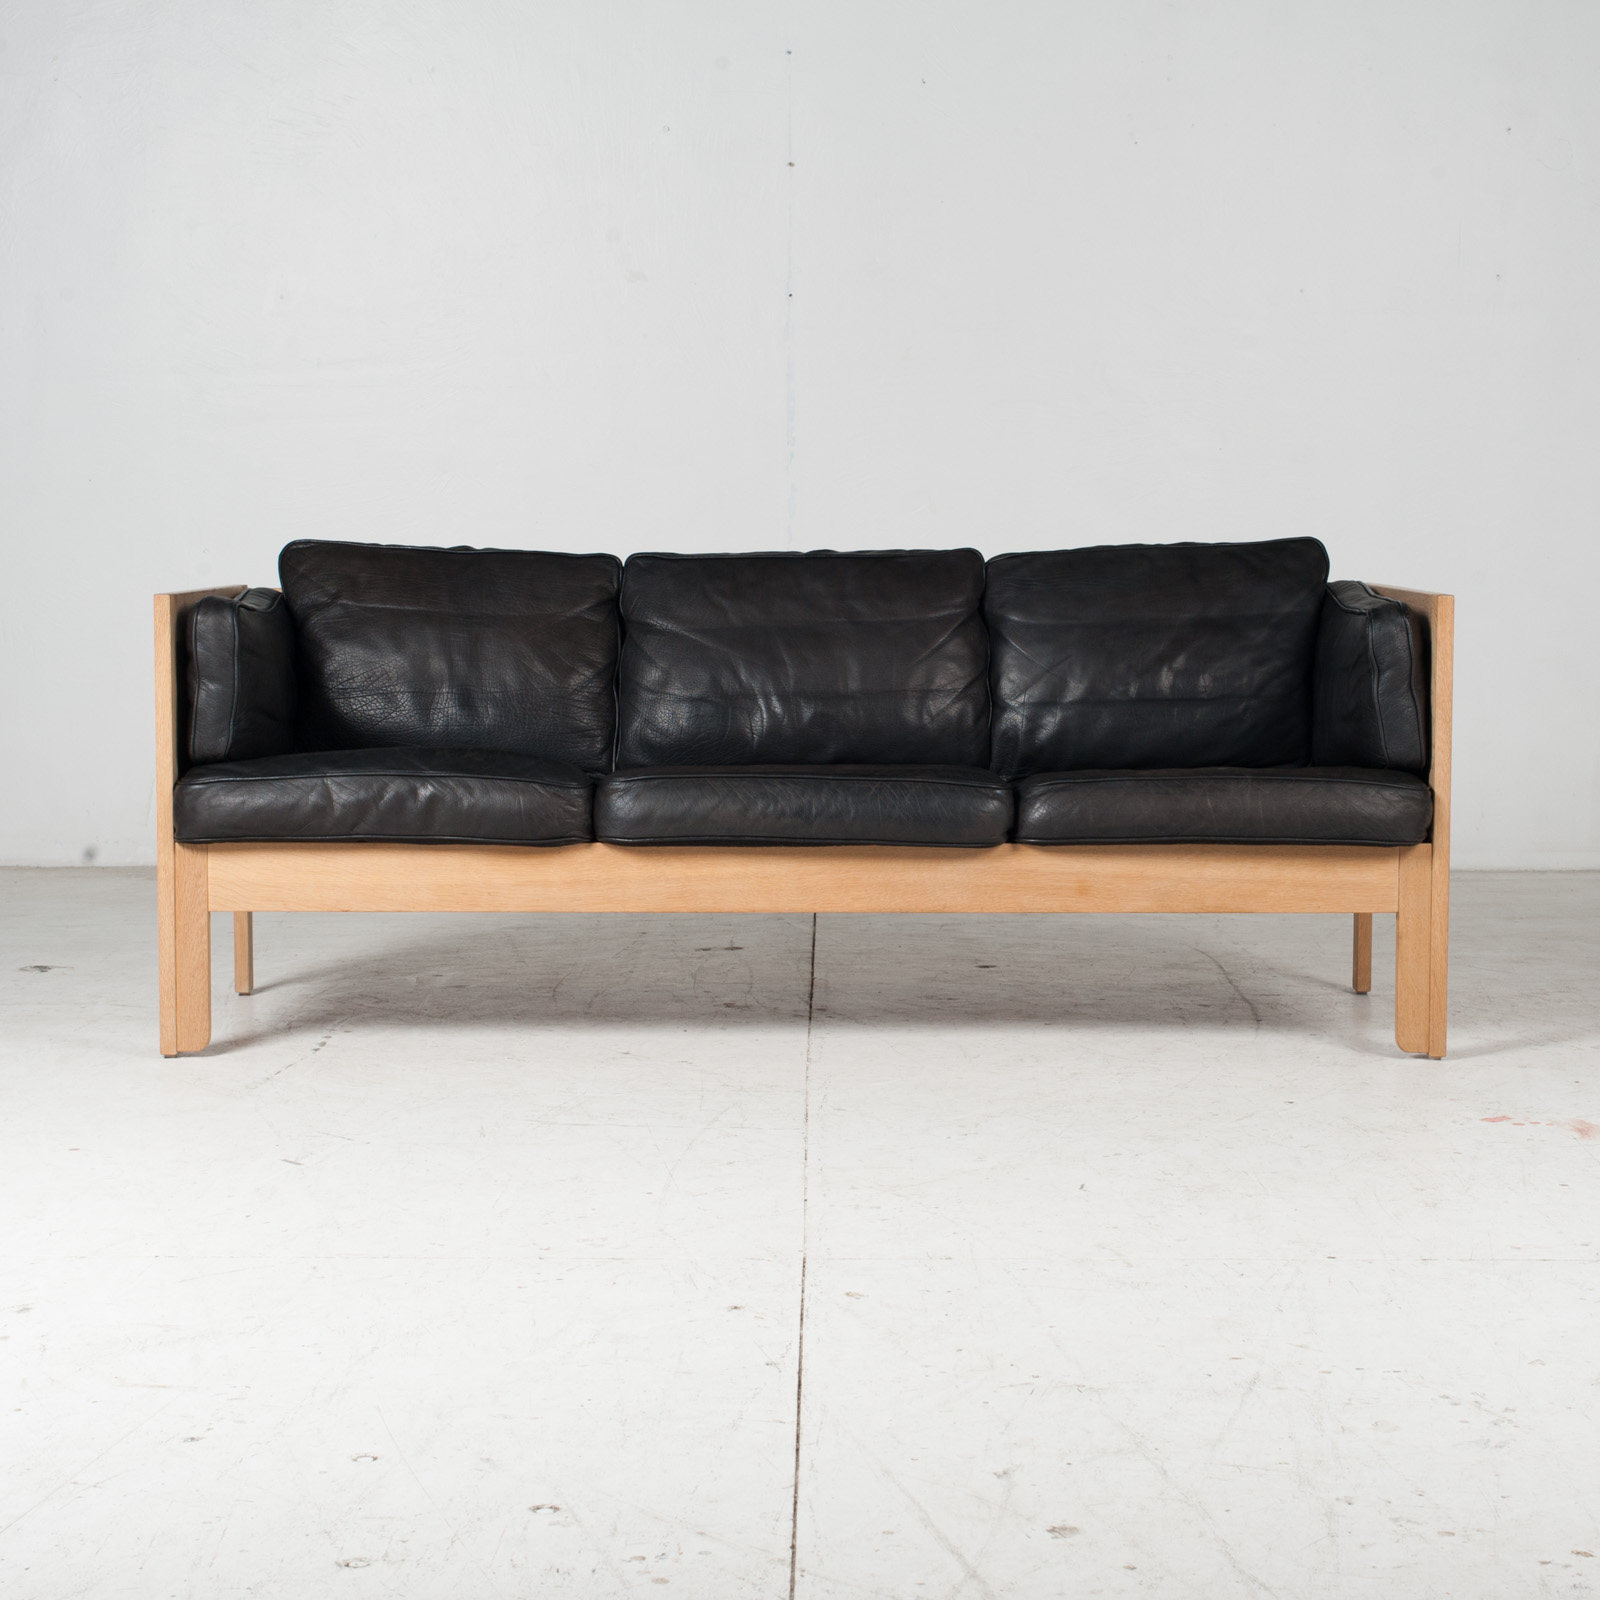 3 Seat Sofa By Borge Mogensen For Frederica In Black Leather And Oak, 1960s, Denmark 1